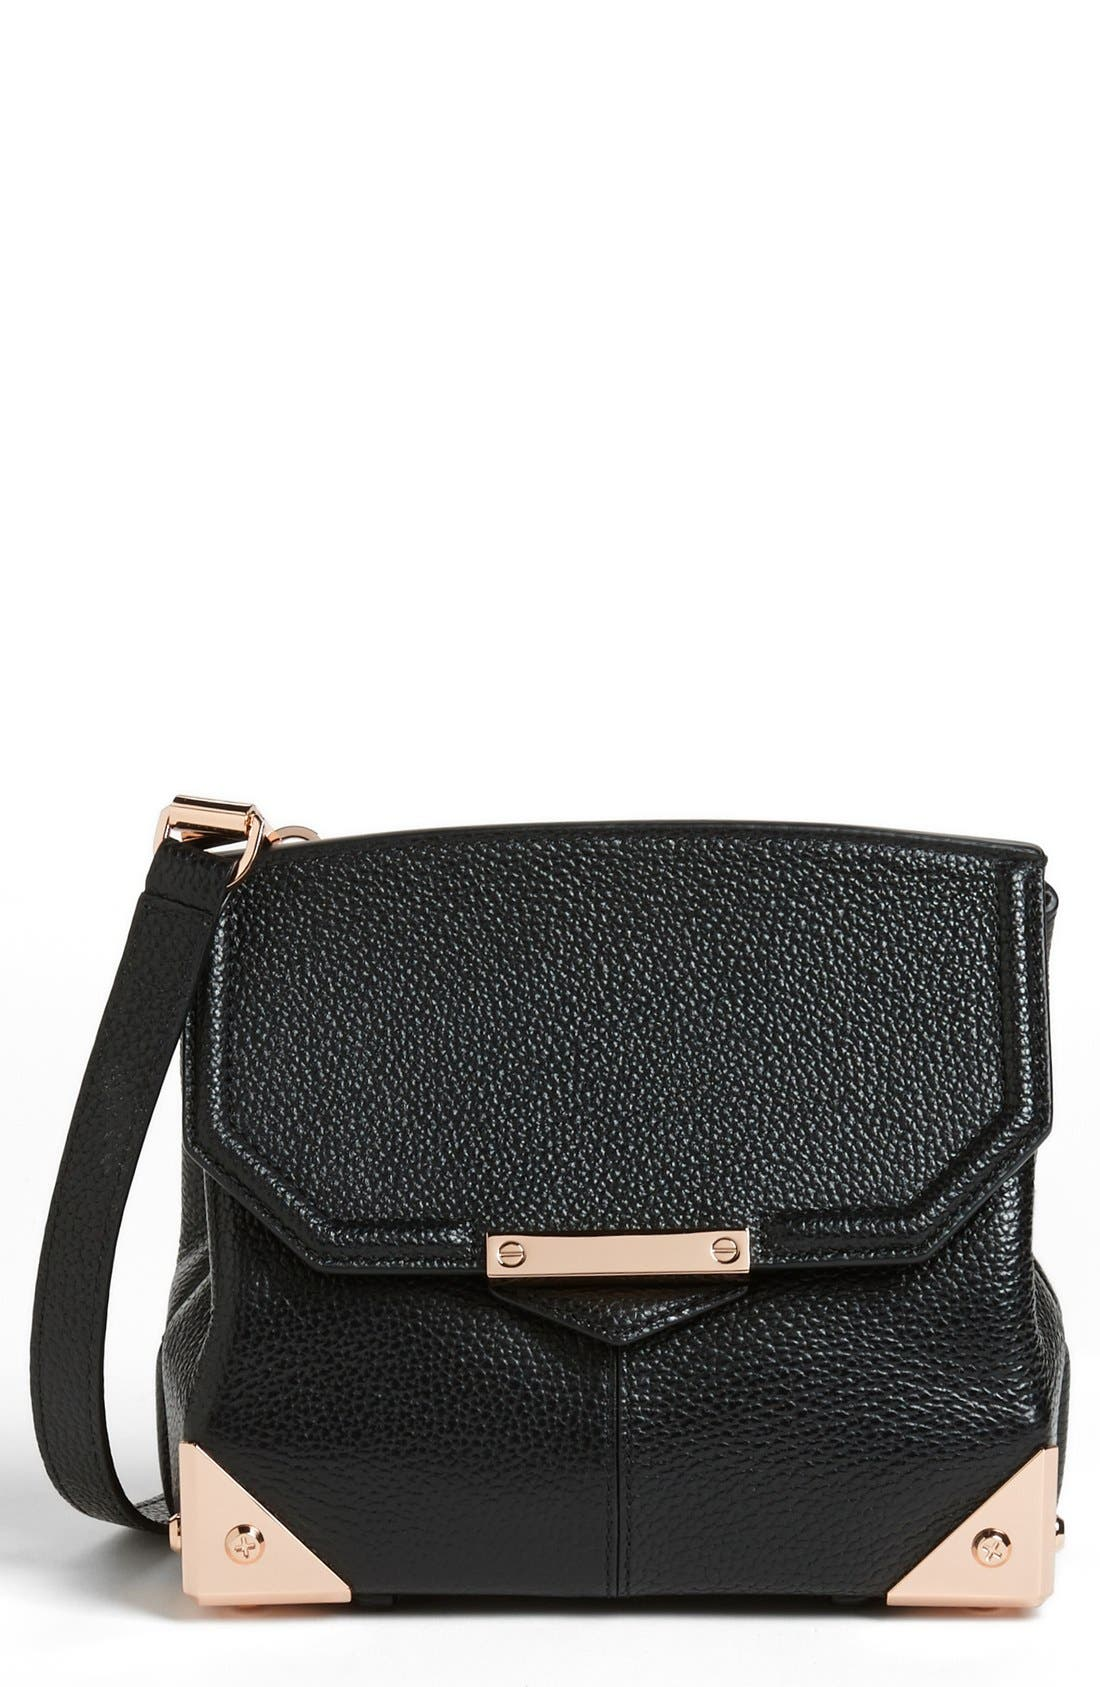 Main Image - Alexander Wang 'Marion - Prisma' Leather Crossbody Bag